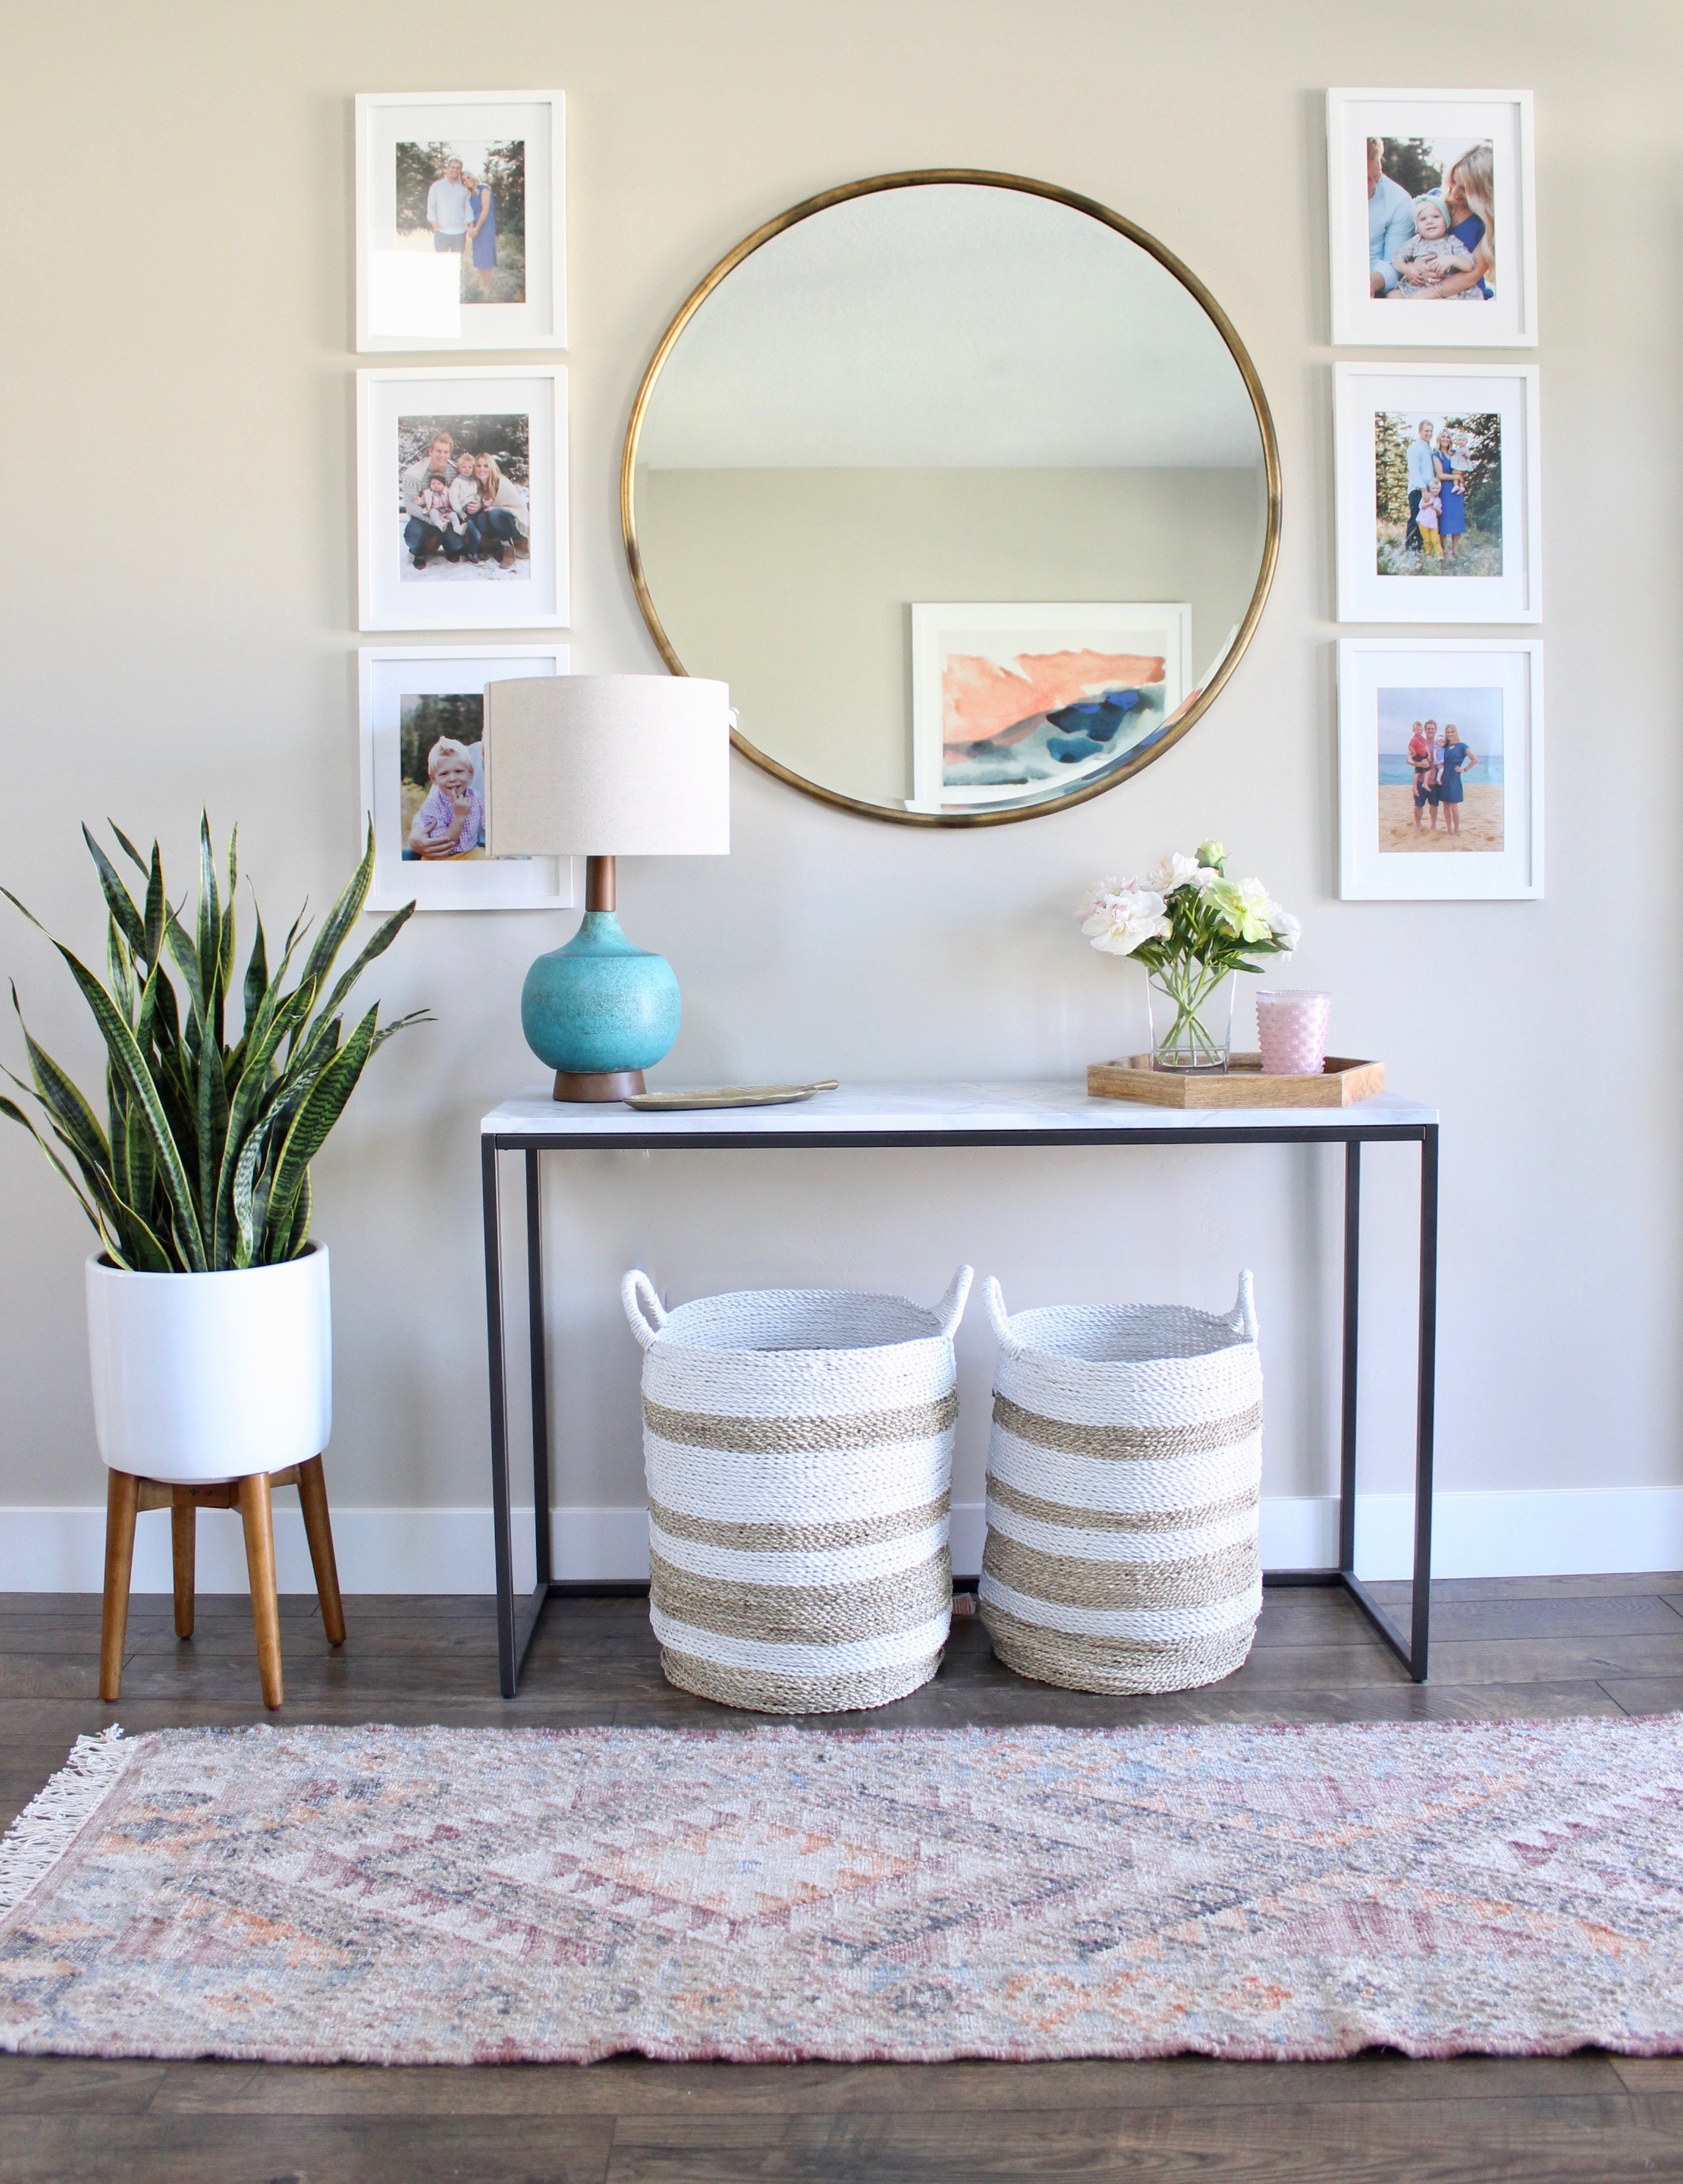 6 Entryway Ideas